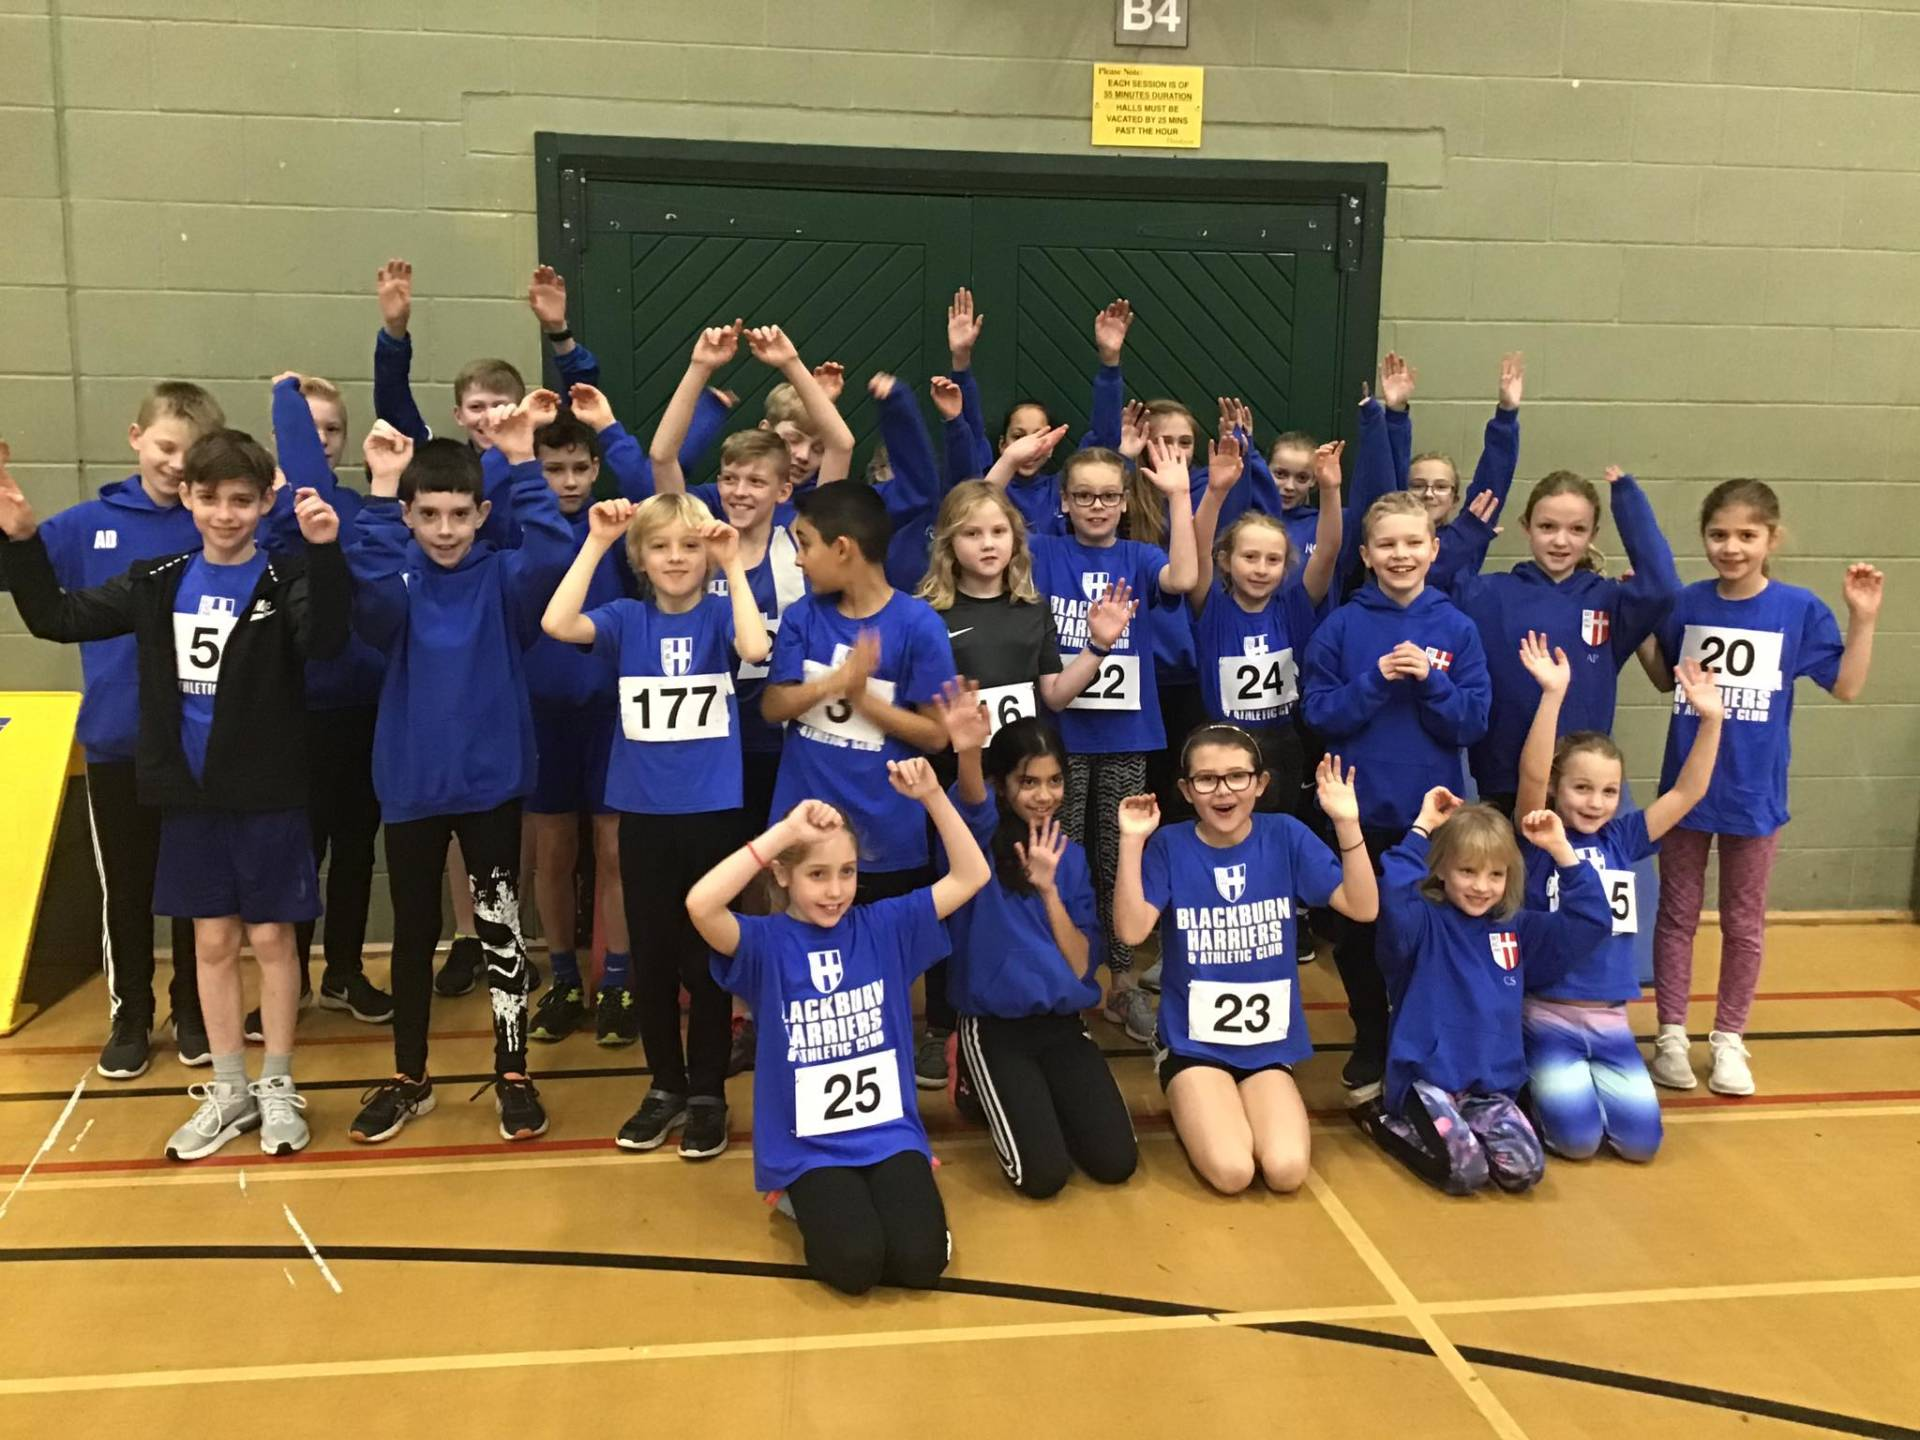 Blackburn Harriers Sportshall Squad shine in Lancashire Sportshall League with Harrison winning Athlete of the Match